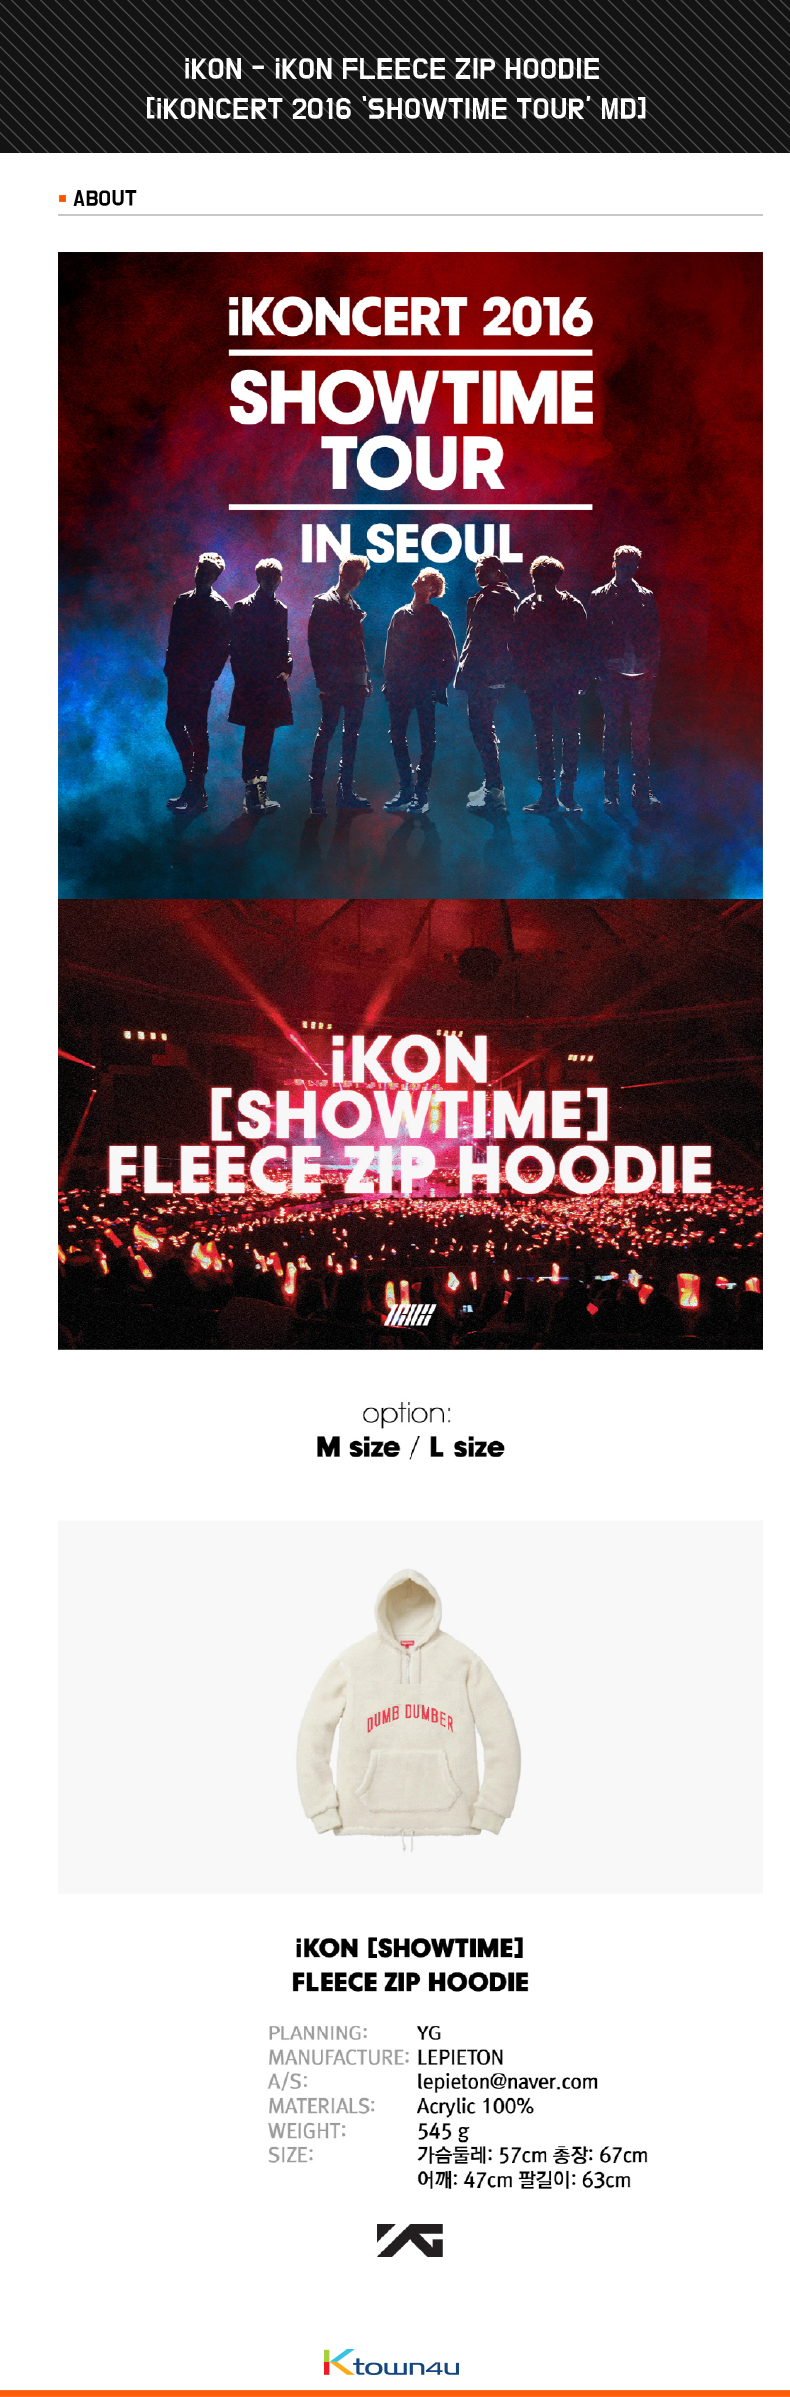 iKON - iKON FLEECE ZIP HOODIE [iKONCERT 2016 'SHOWTIME TOUR' MD]